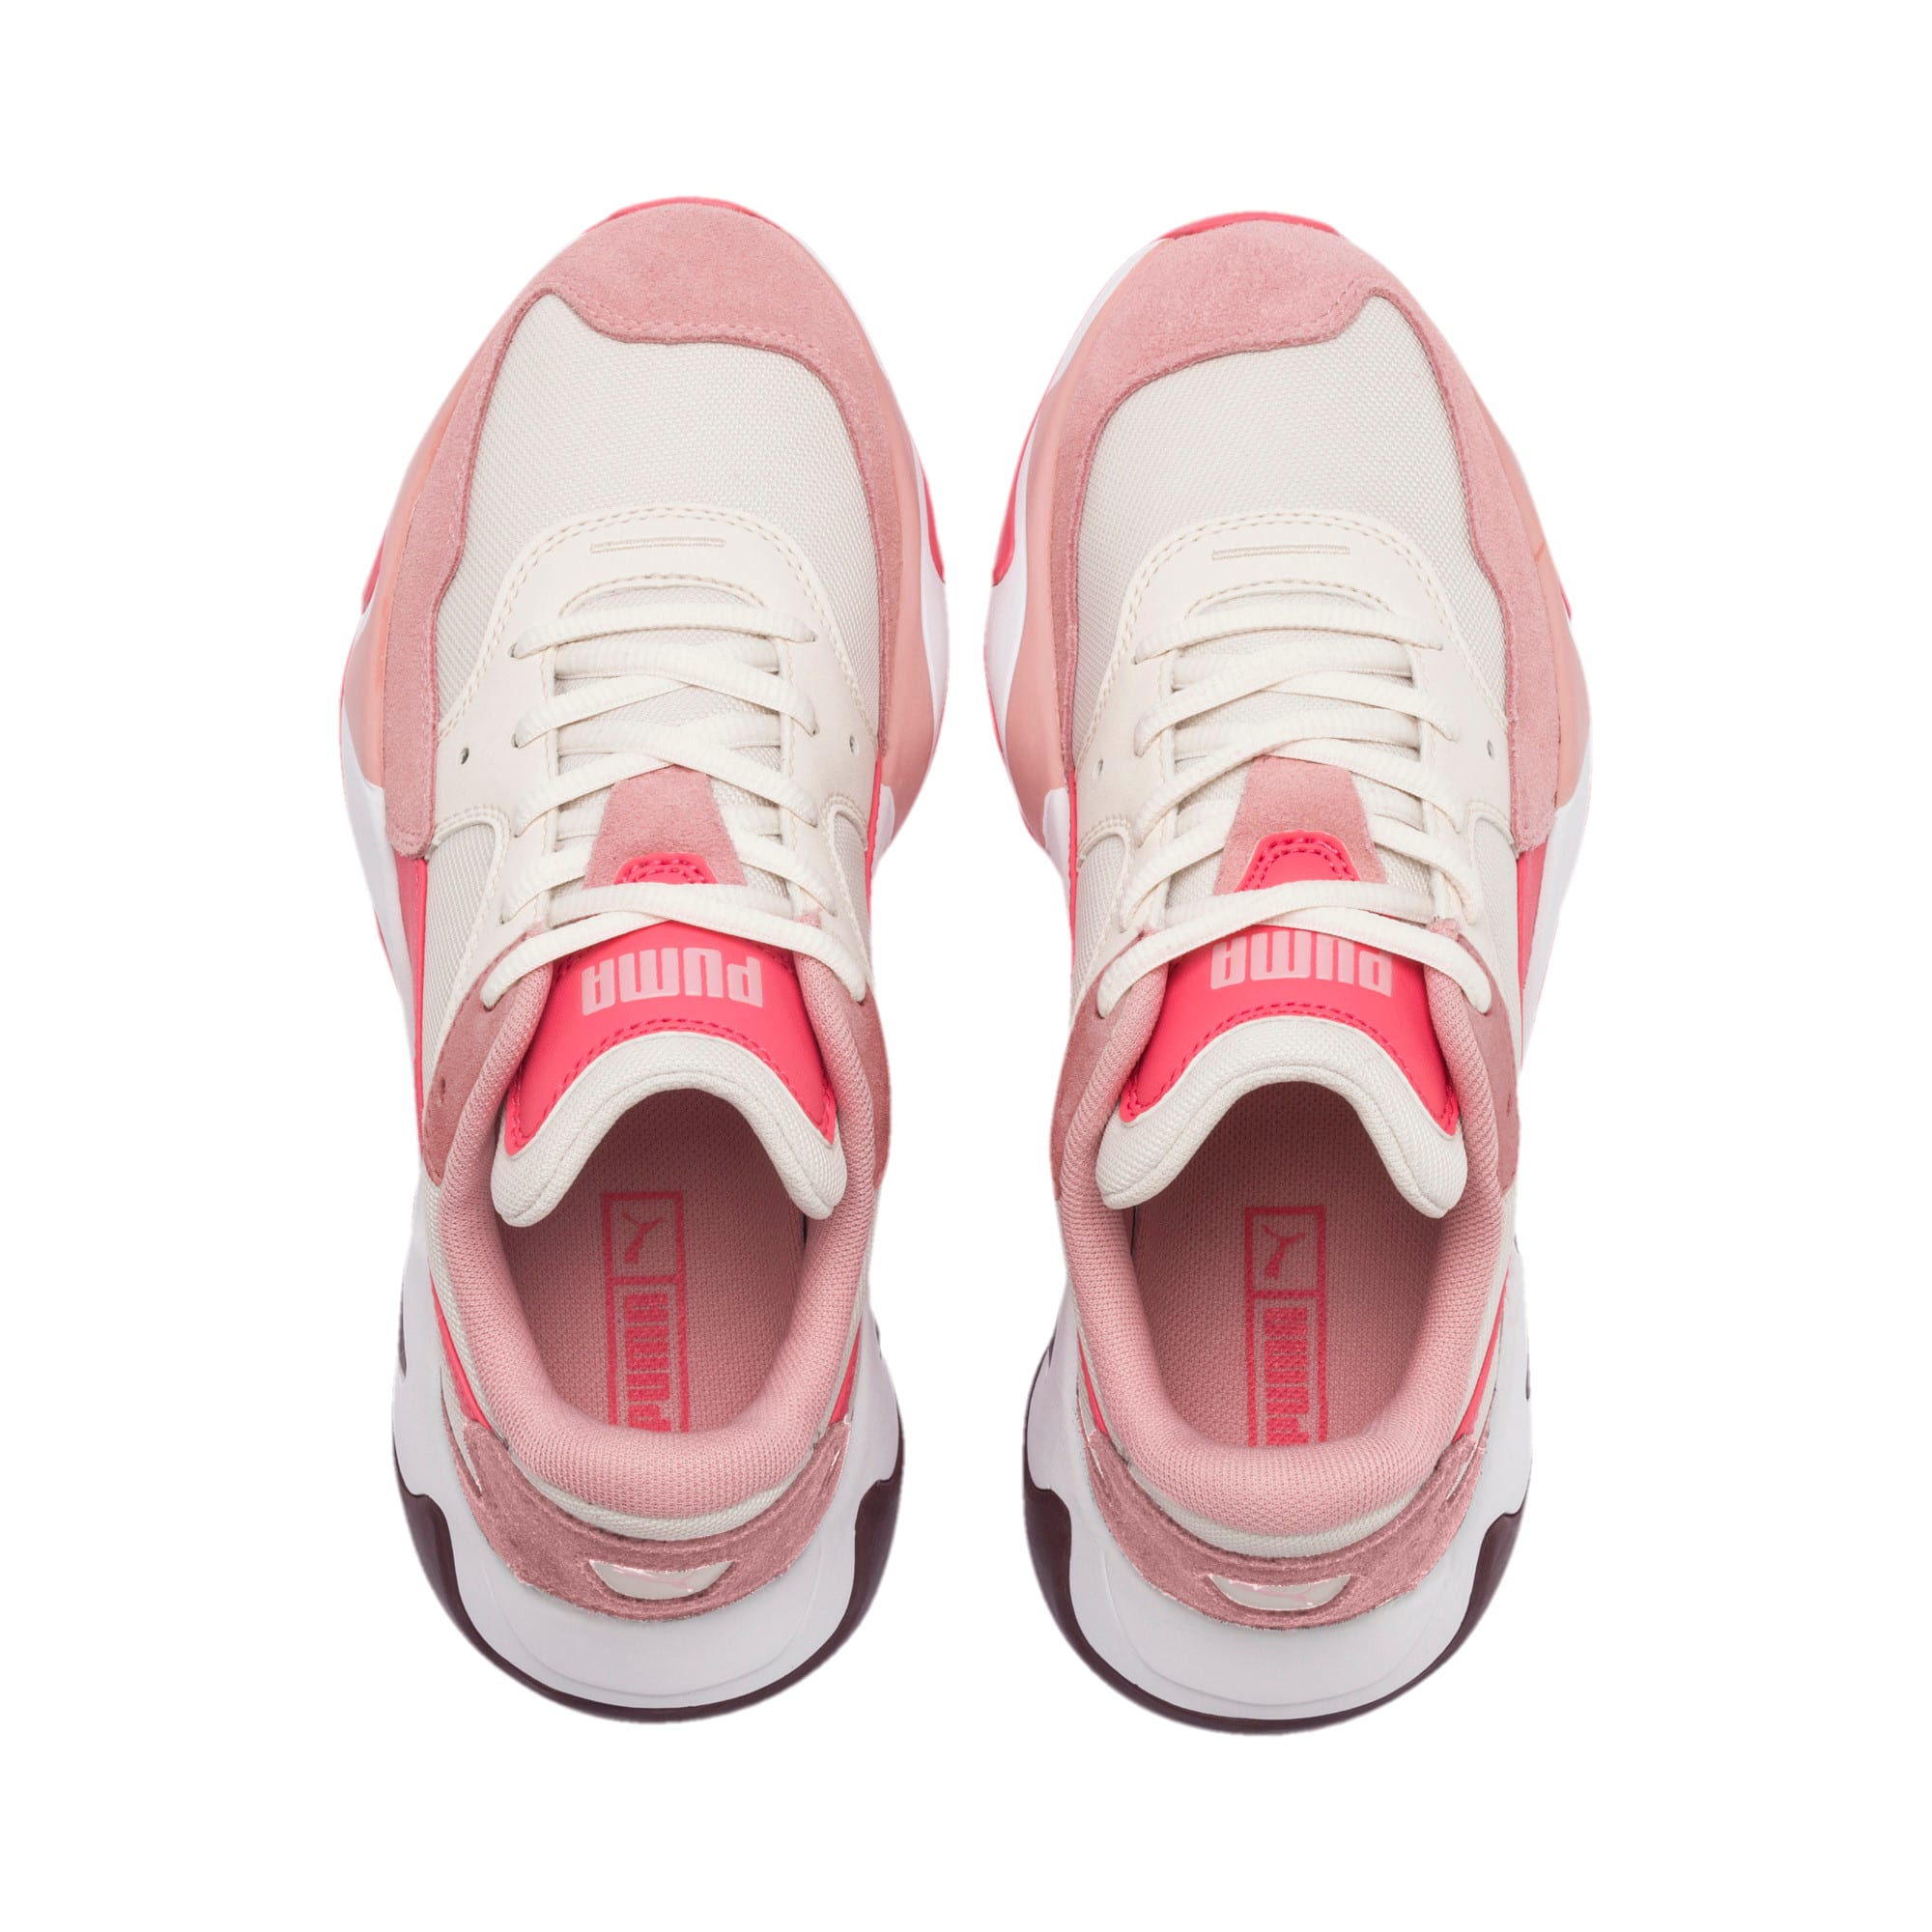 Anteprima 6 di Storm Ray Youth Trainers, Bridal Rose-Pastel Parchment, medio